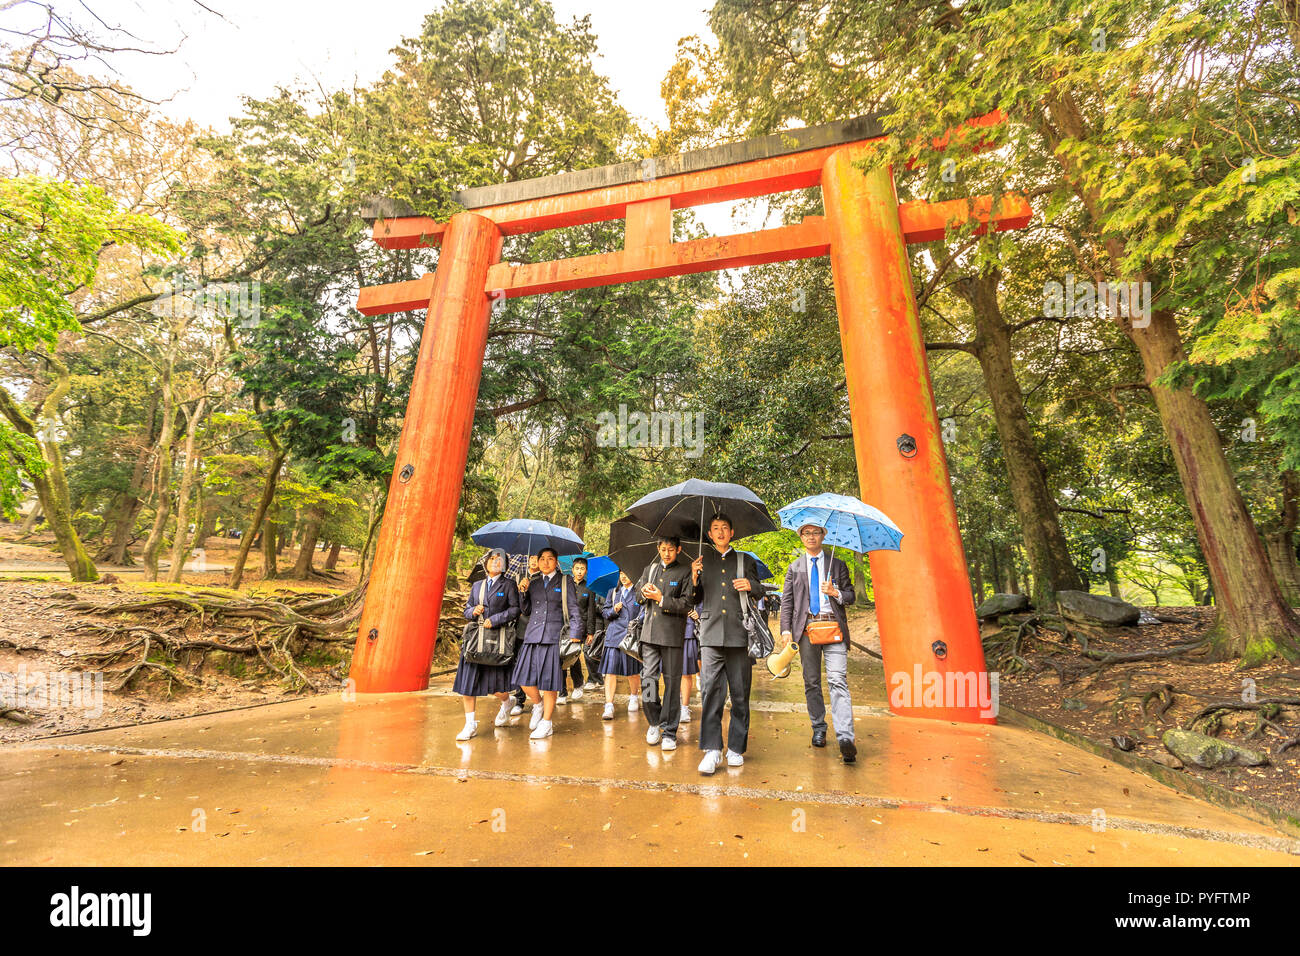 Nara, Japan - April 26, 2017: young teens in school uniforms walking with umbrellas through red Torii entrance of Kasuga Shrine. Kasuga Taisha is Nara's most celebrated shrine. - Stock Image